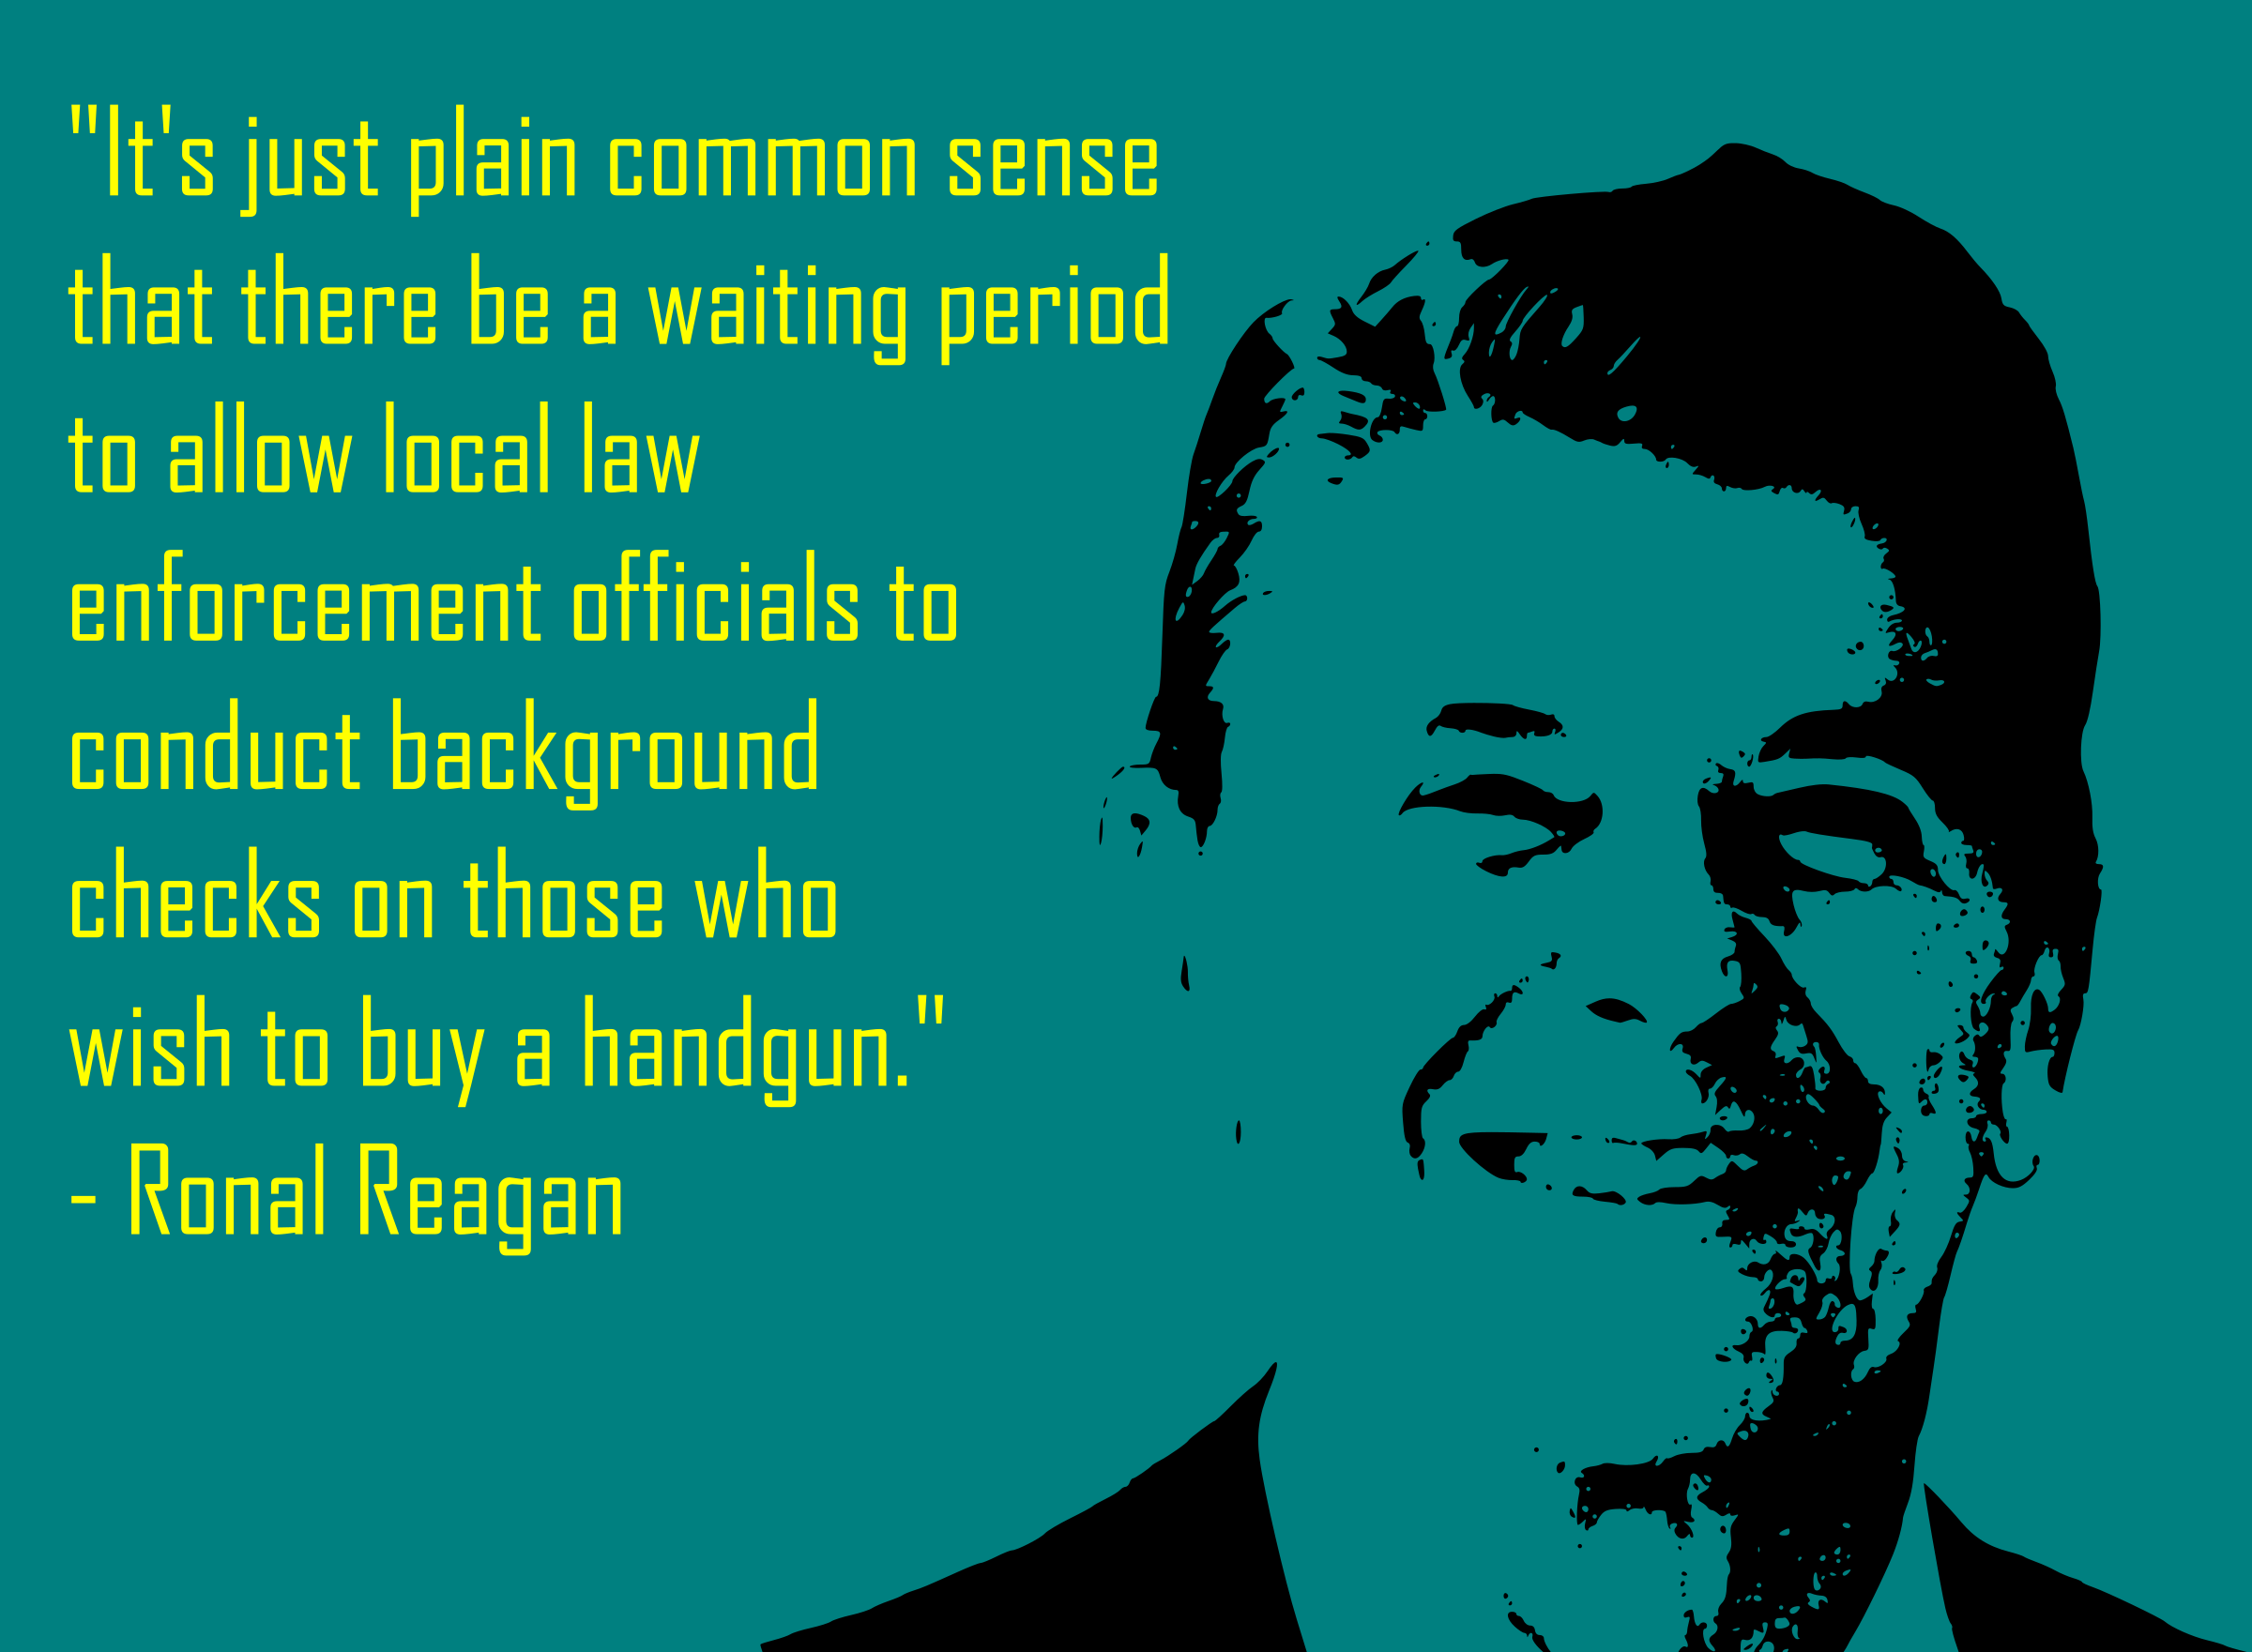 Ronald Reagan quote by liftarn